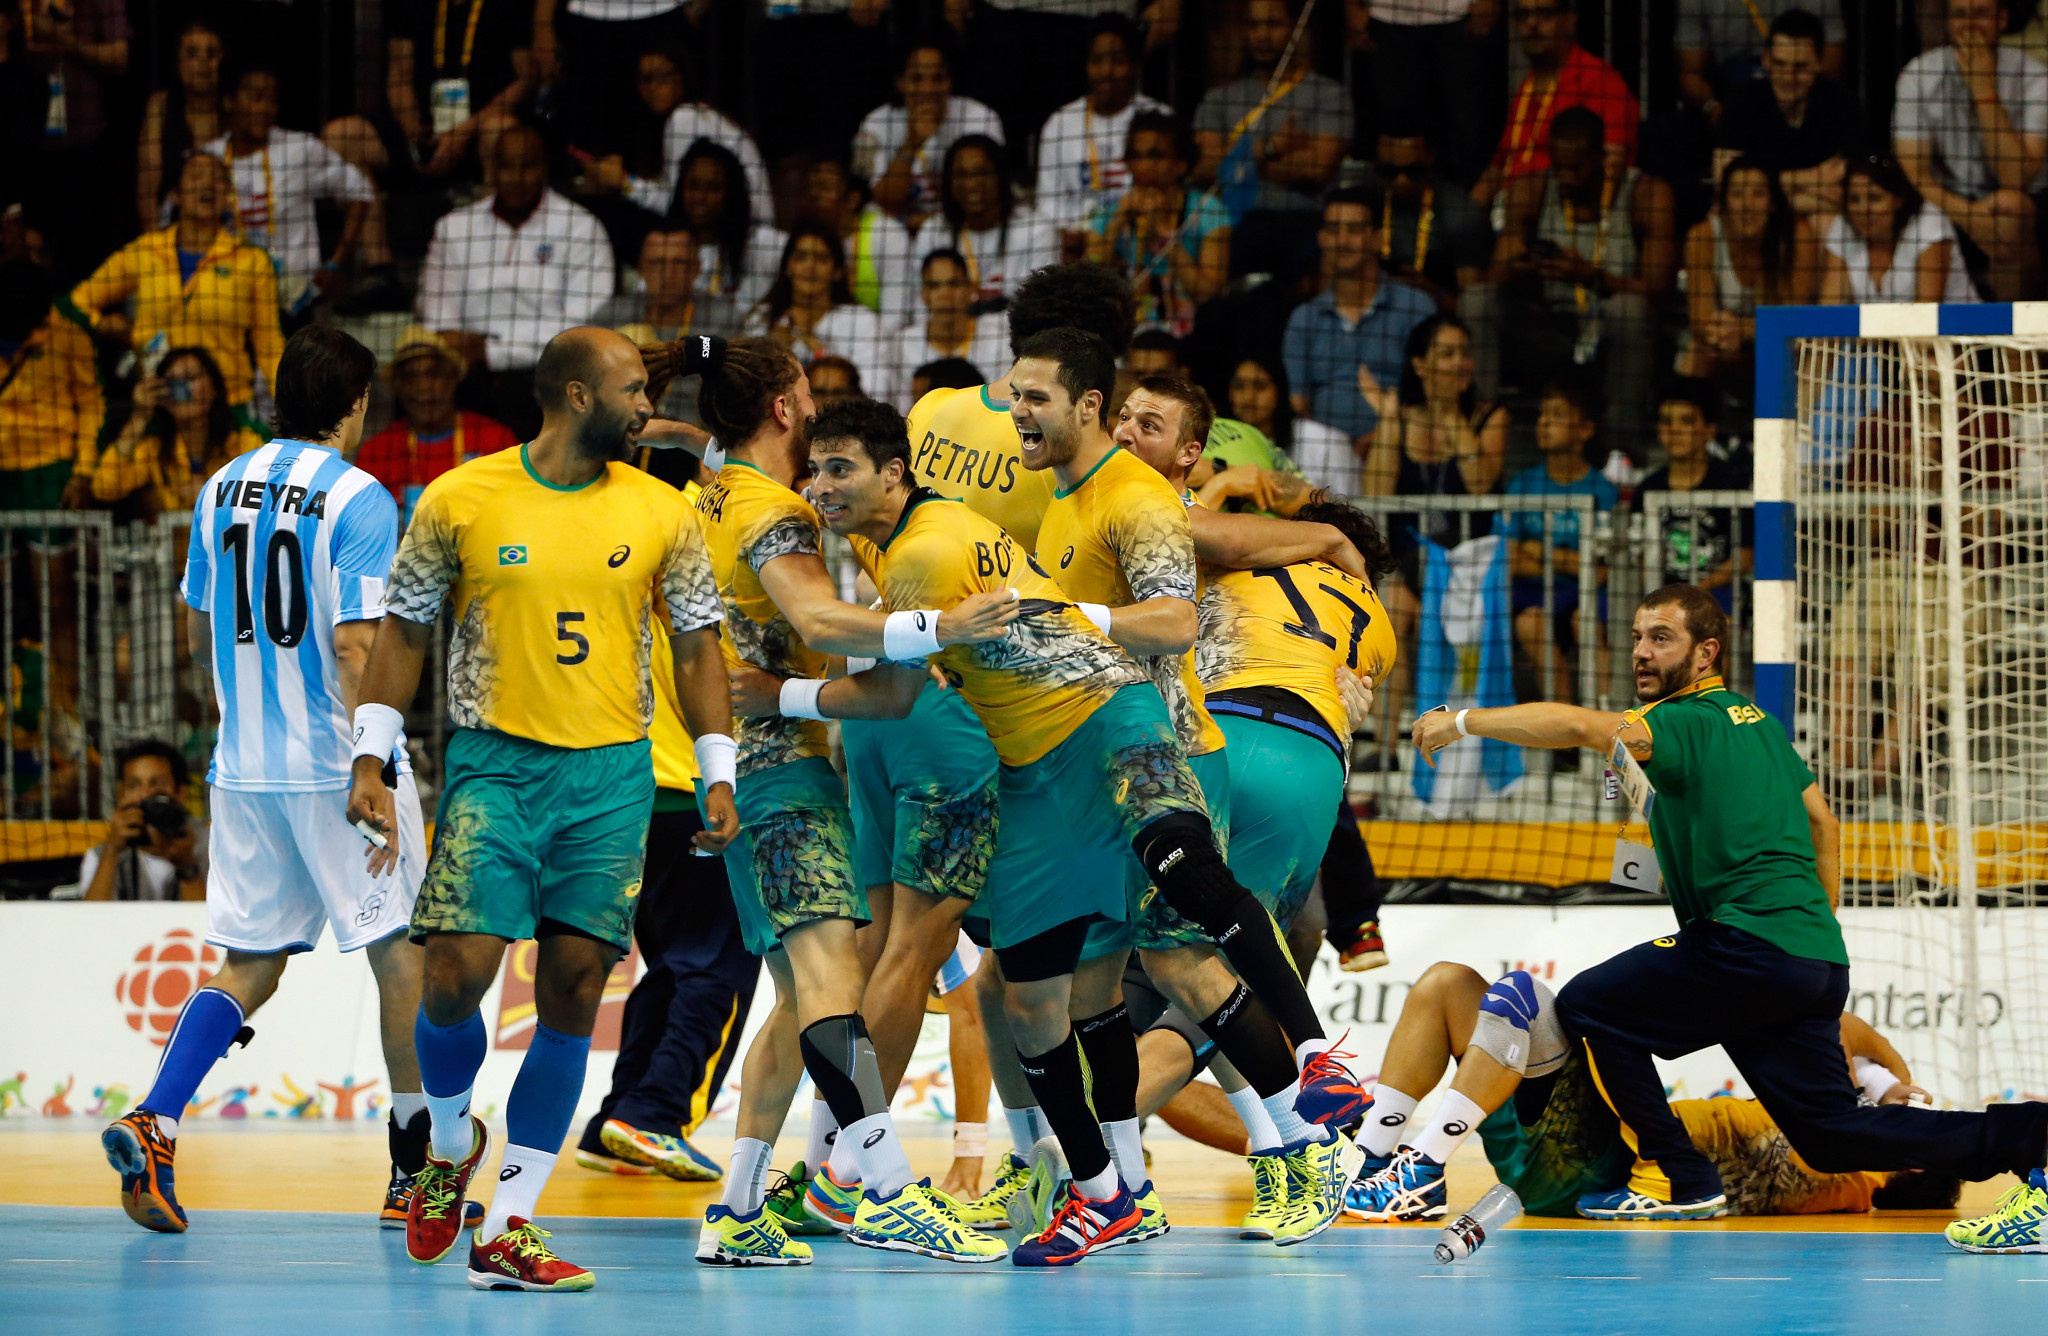 Brazil won both the men's and women's handball titles at the Toronto 2015 Pan American Games ©Getty Images